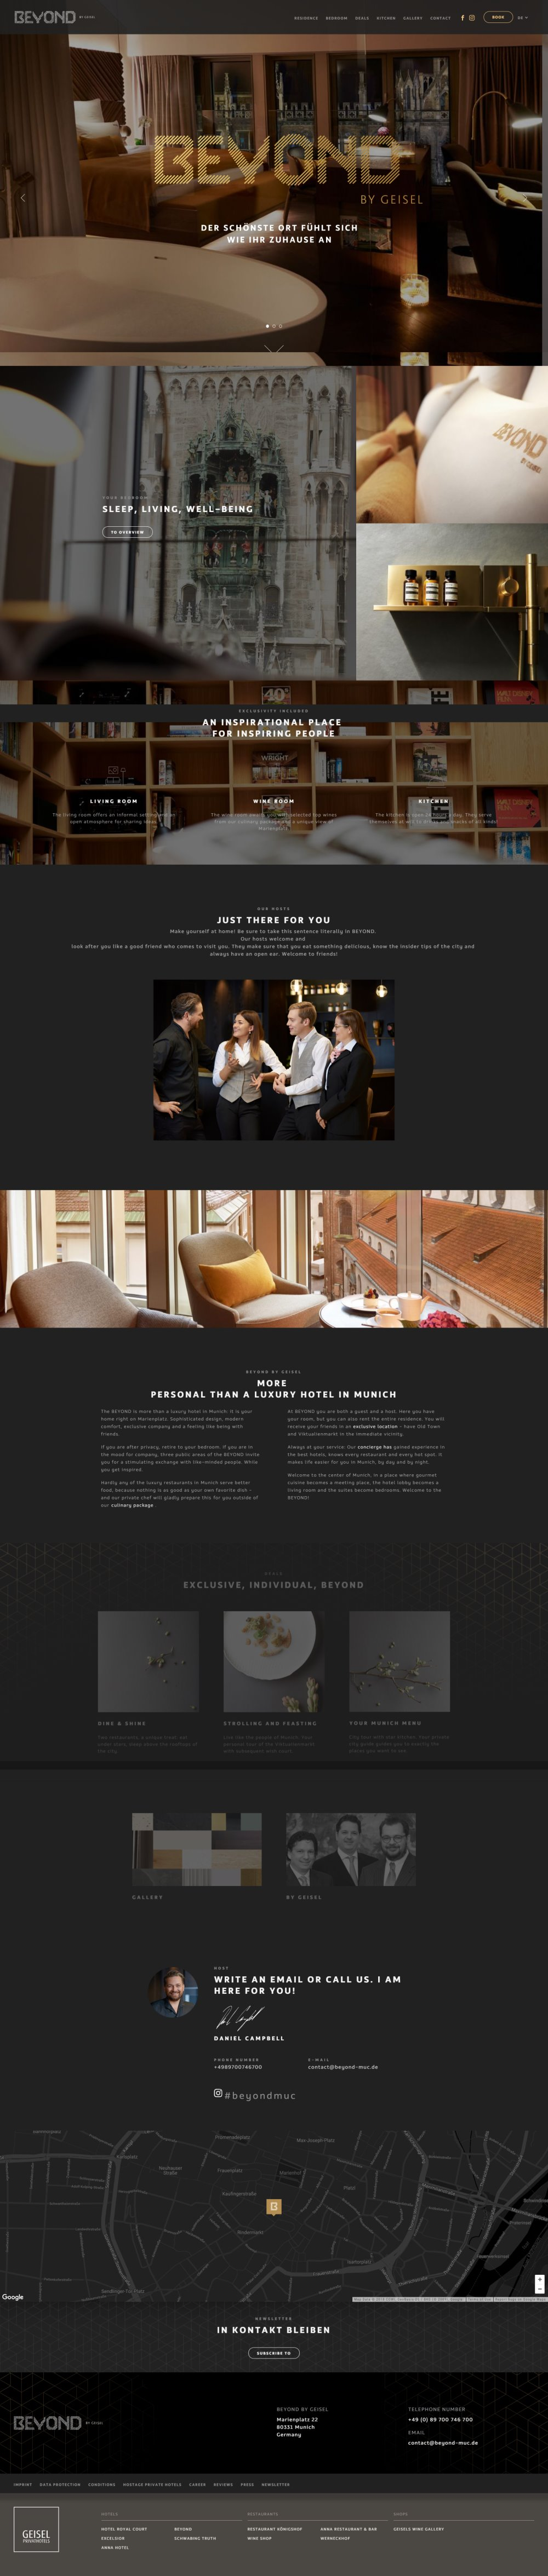 Best Hotel Website Designs for Your Inspiration